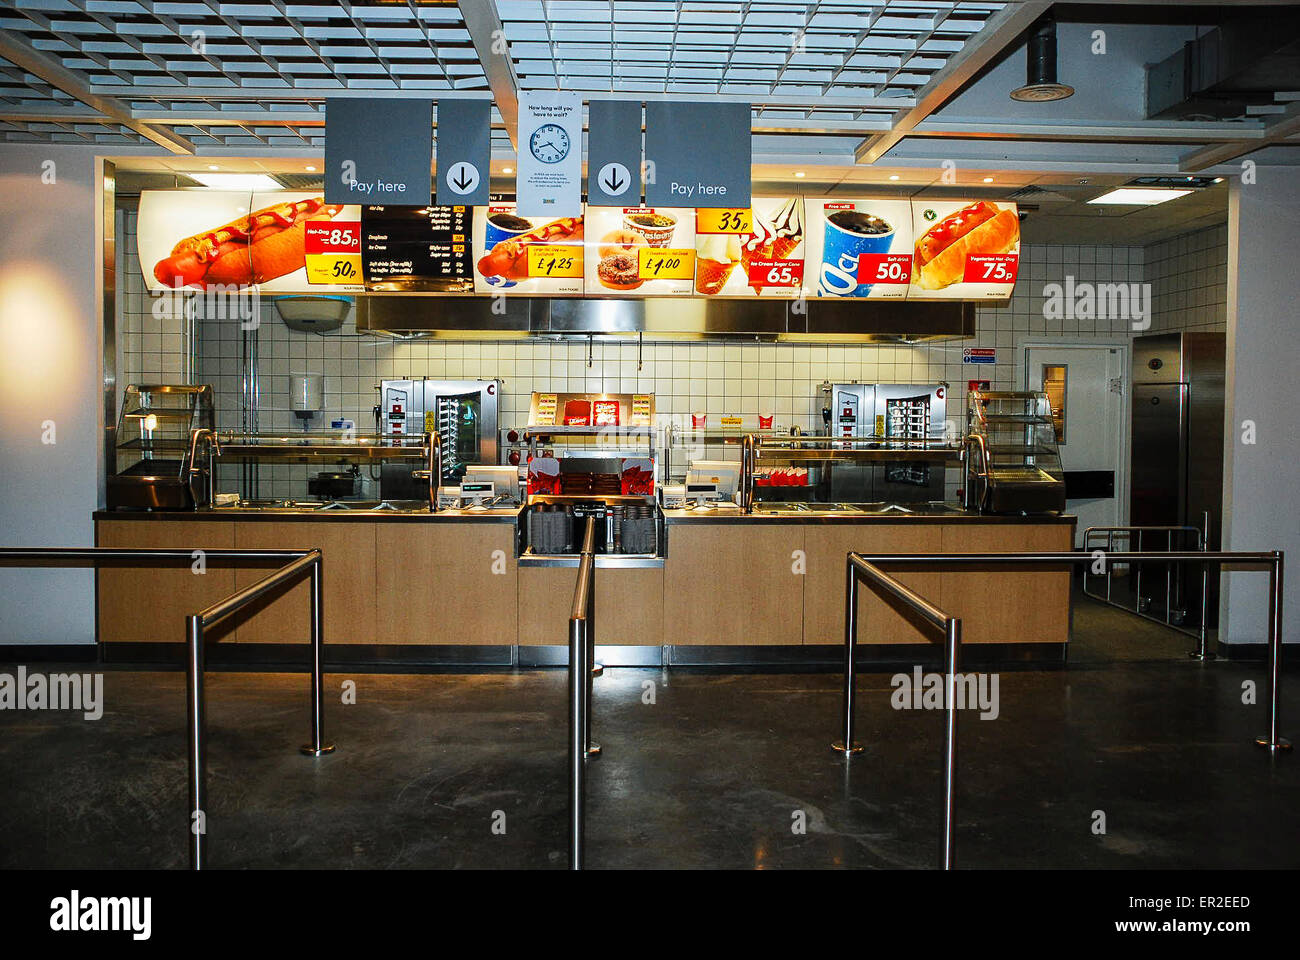 Restoration Hardware Trestle Table, Hotdog Counter At An Ikea Store Stock Photo Alamy